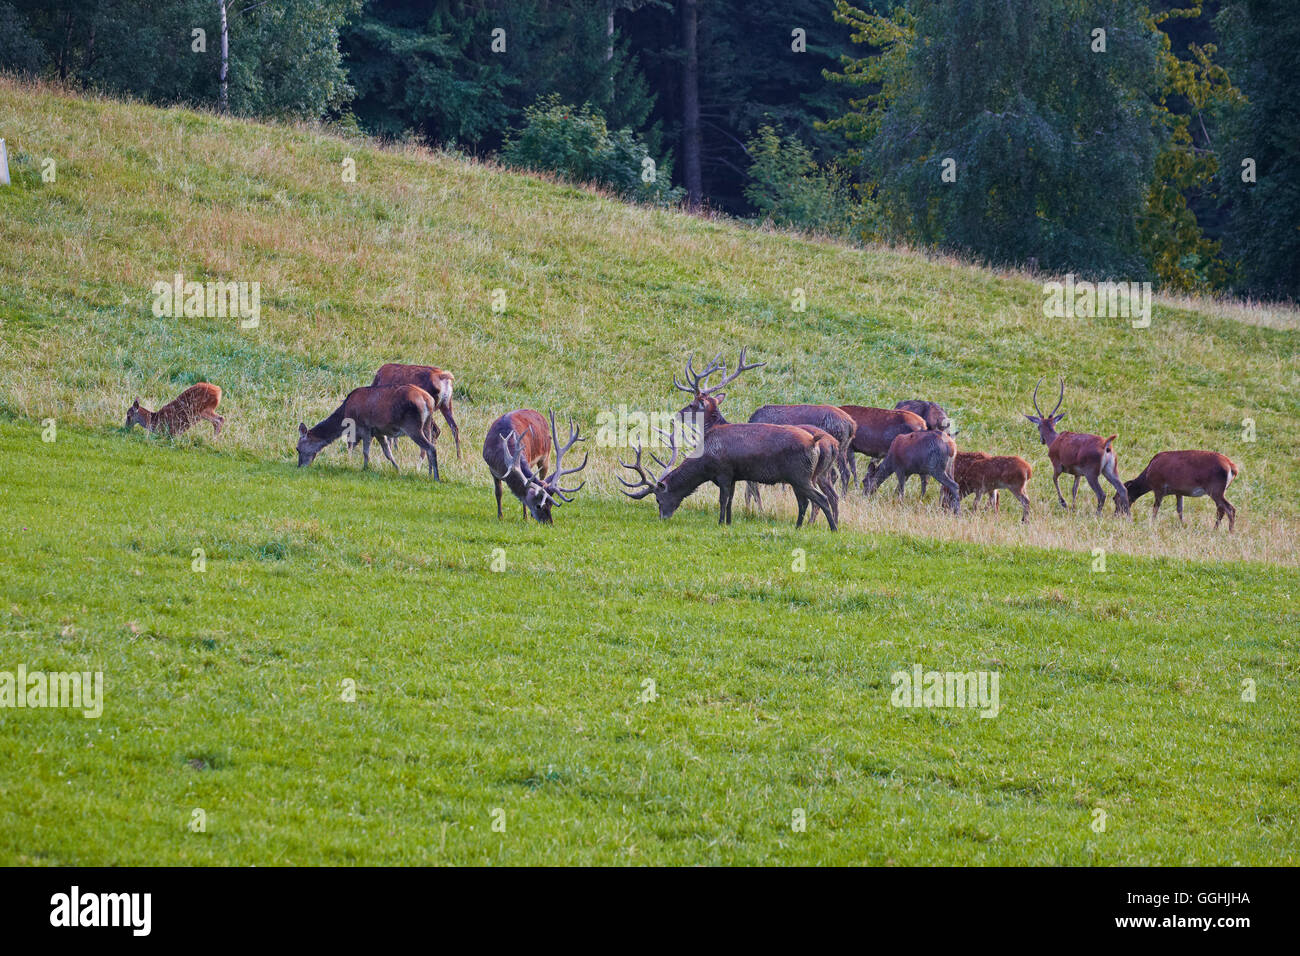 Deer on Pfaender mountain, Near Bregenz, Bodensee, Austria, Europe Stock Photo